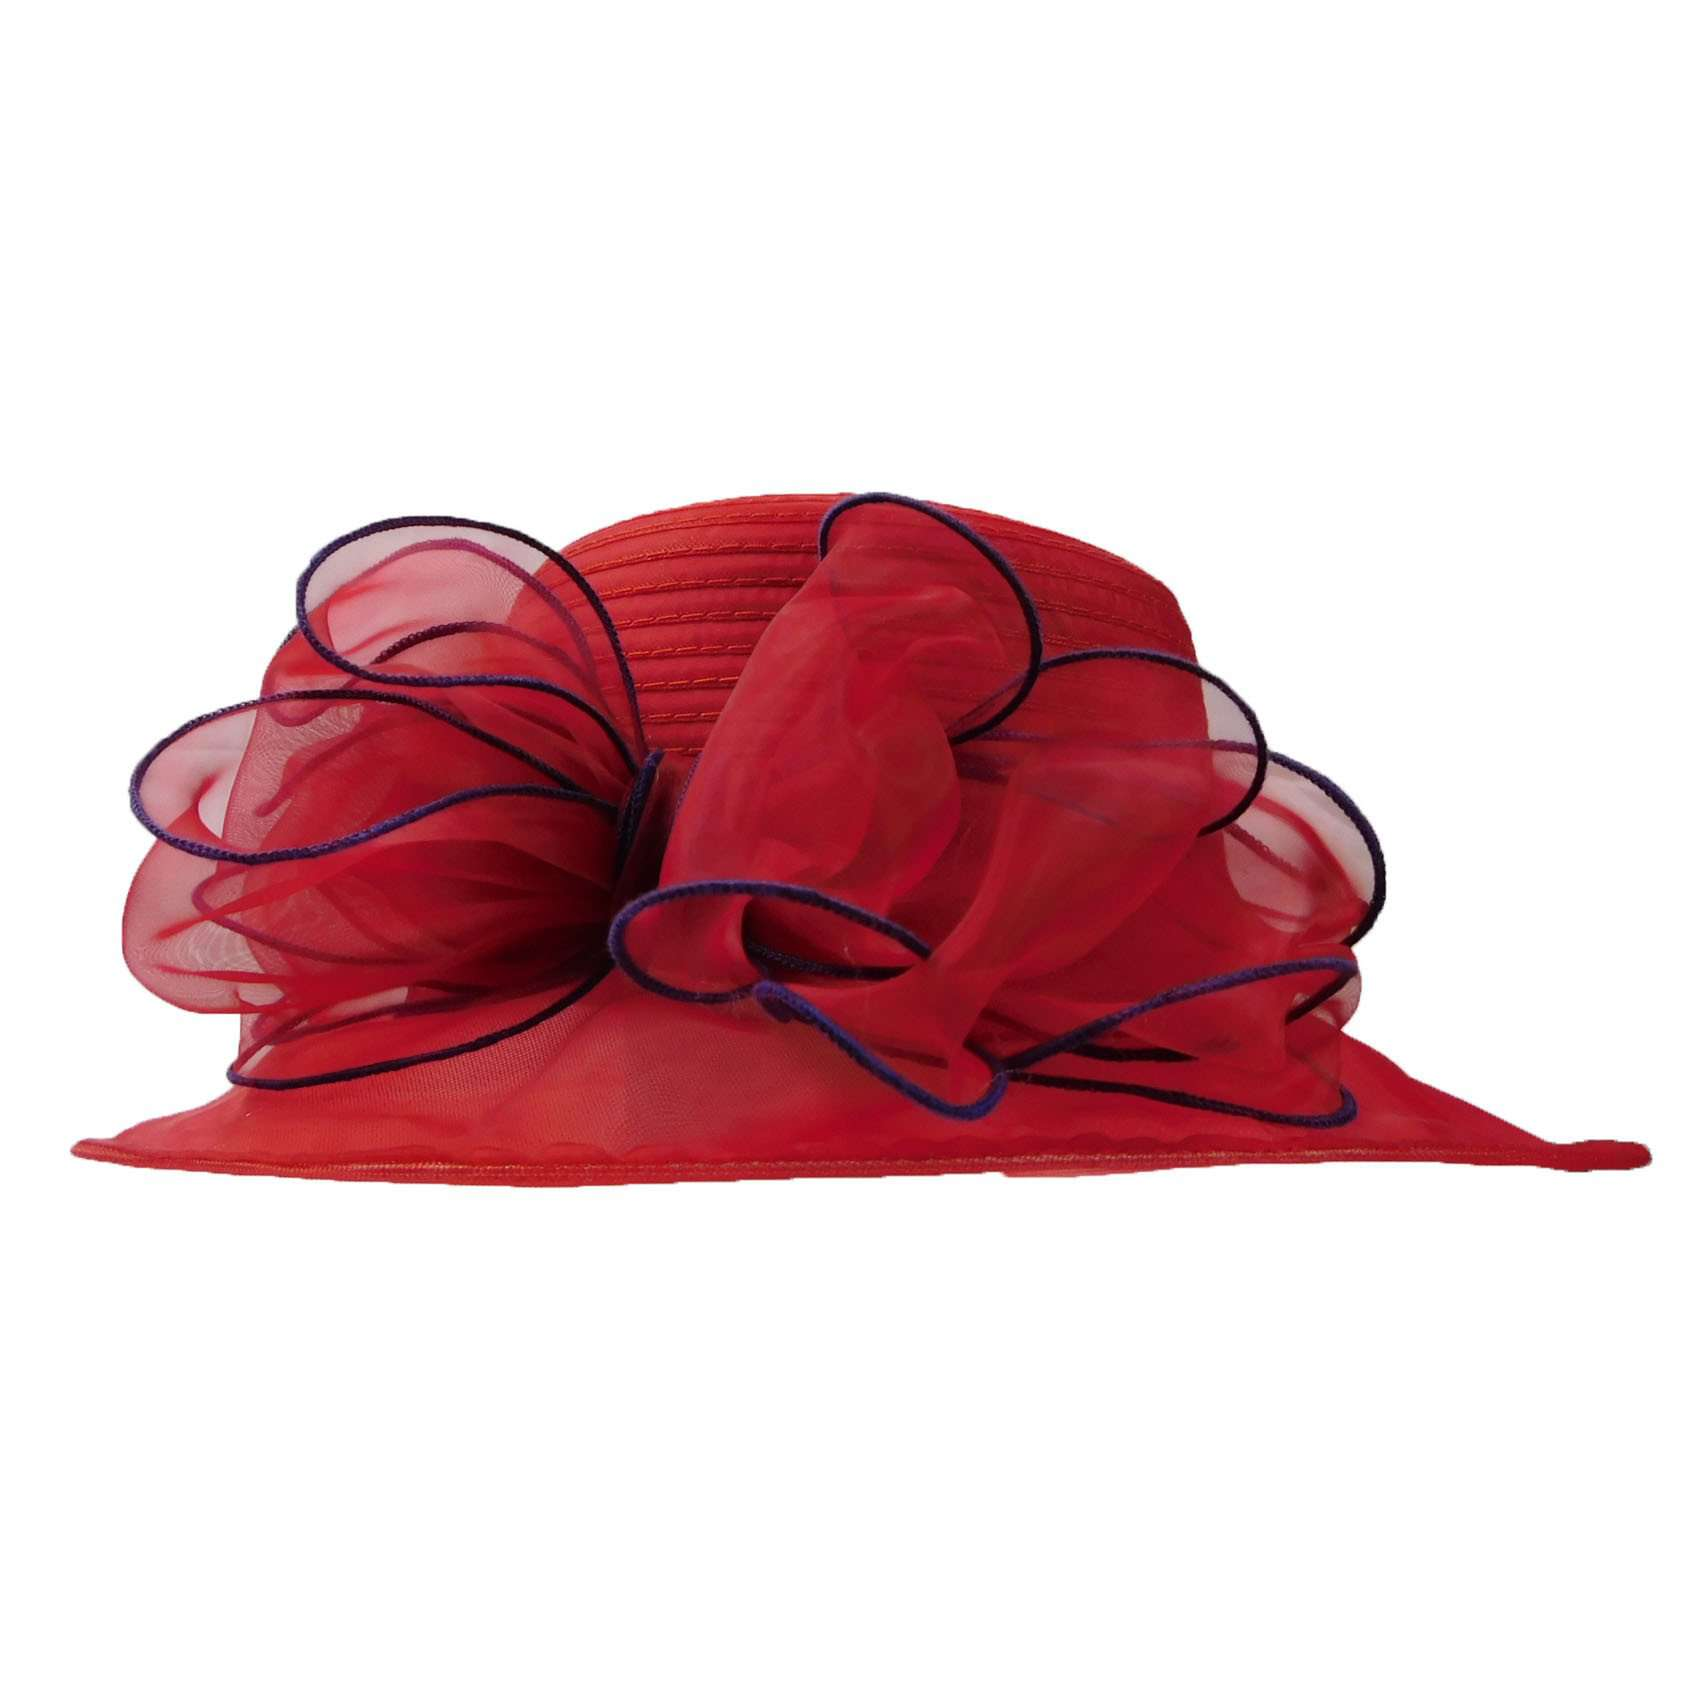 Organza with Large Bow - SetarTrading Hats